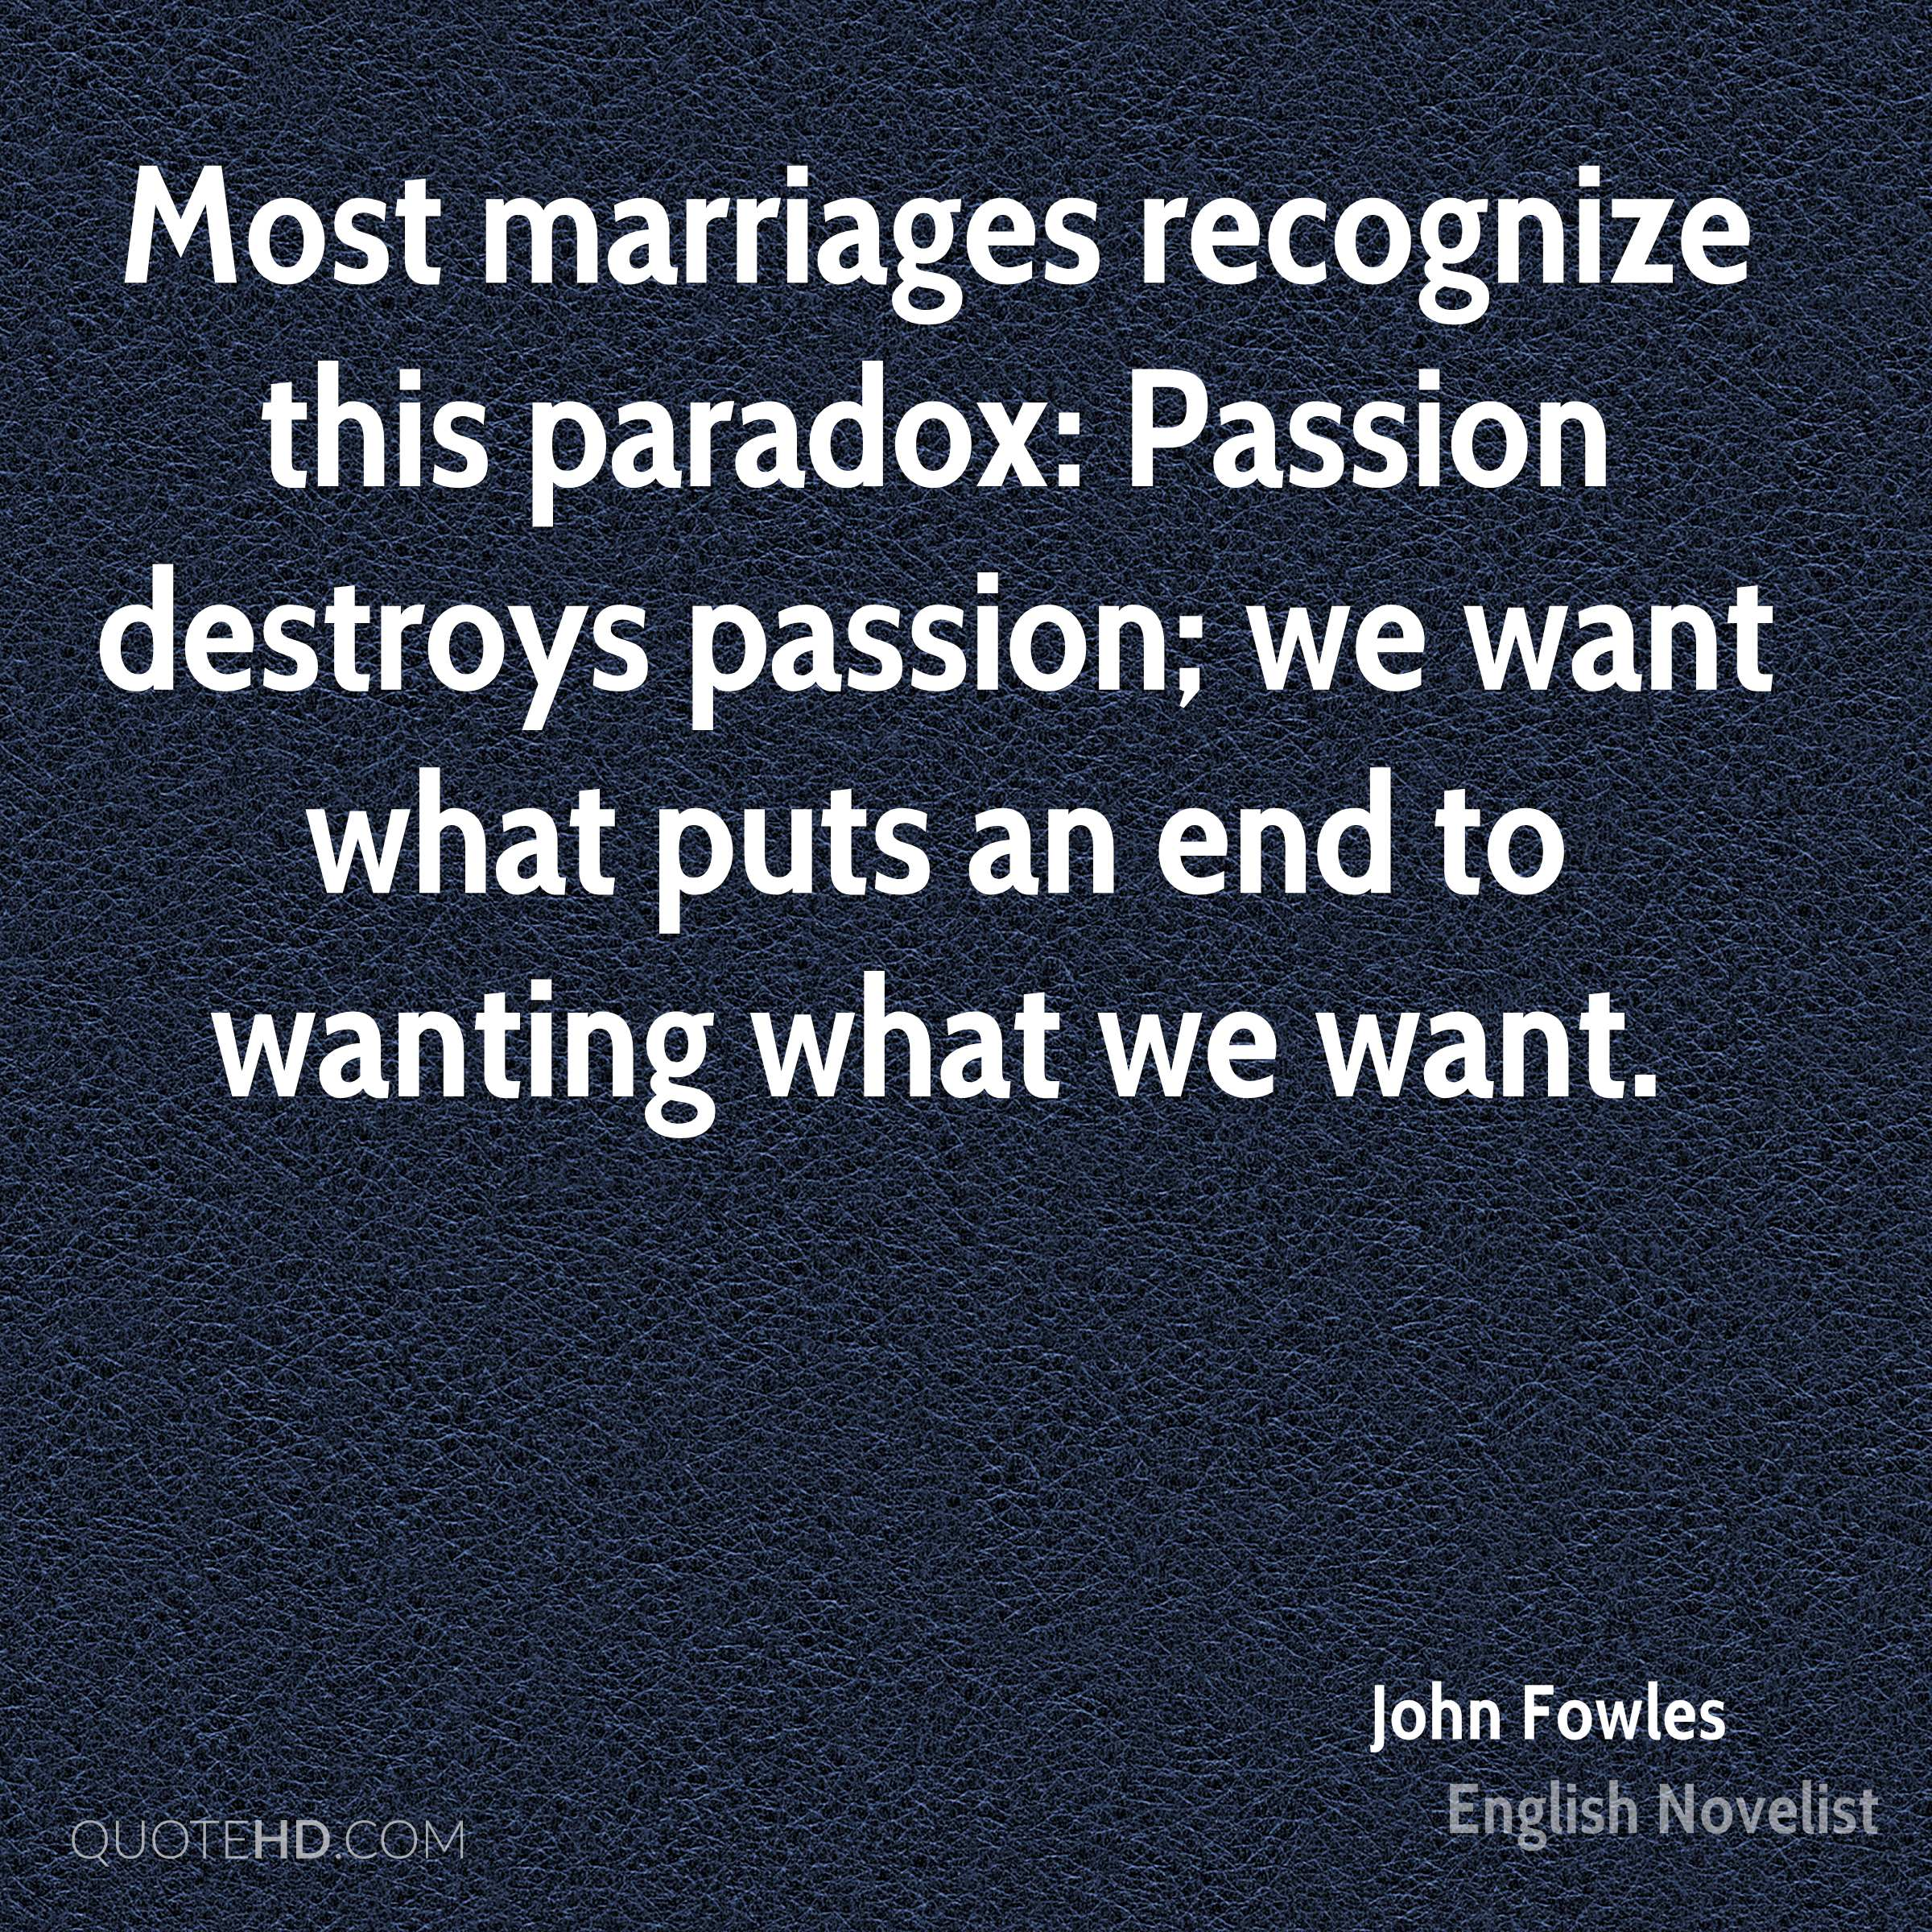 Most marriages recognize this paradox: Passion destroys passion; we want what puts an end to wanting what we want.